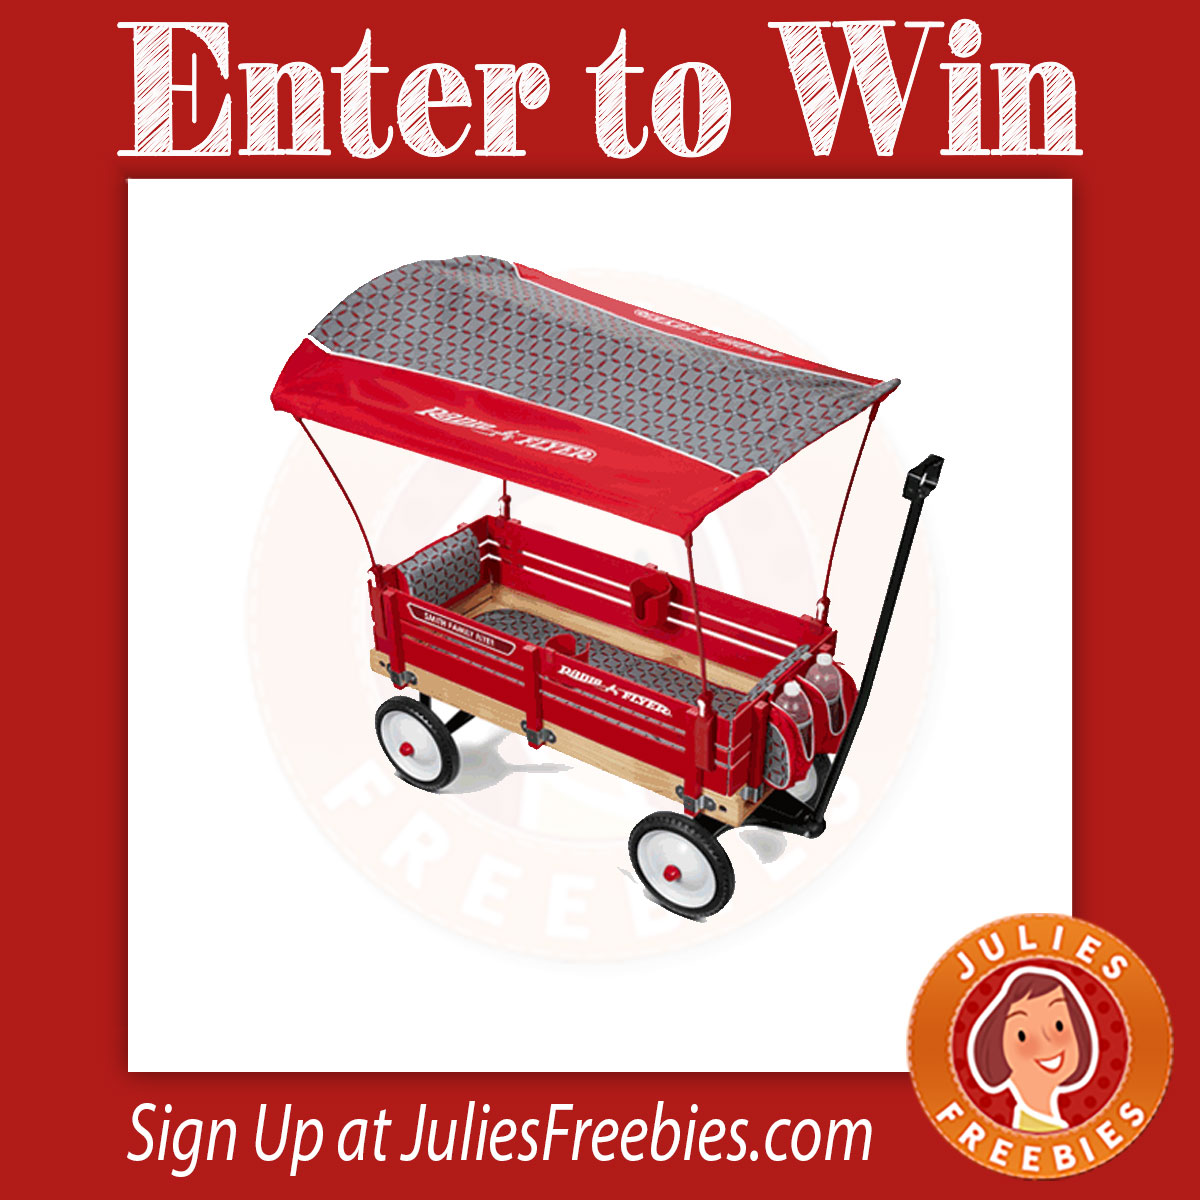 Radio Flyer Classic Kids Wagon - Kids Wagons at Hayneedle Find this Pin and more on Get Out & Play by Hayneedle. Radio Flyer Classic Kids Wagon - Almost everyone has memories of a Radio Flyer Classic Kids Wagon in their childhood. This classic toy can go everywhere with your family, from the. Radio Flyer Classic Red Wagon Ride On on Hobby.